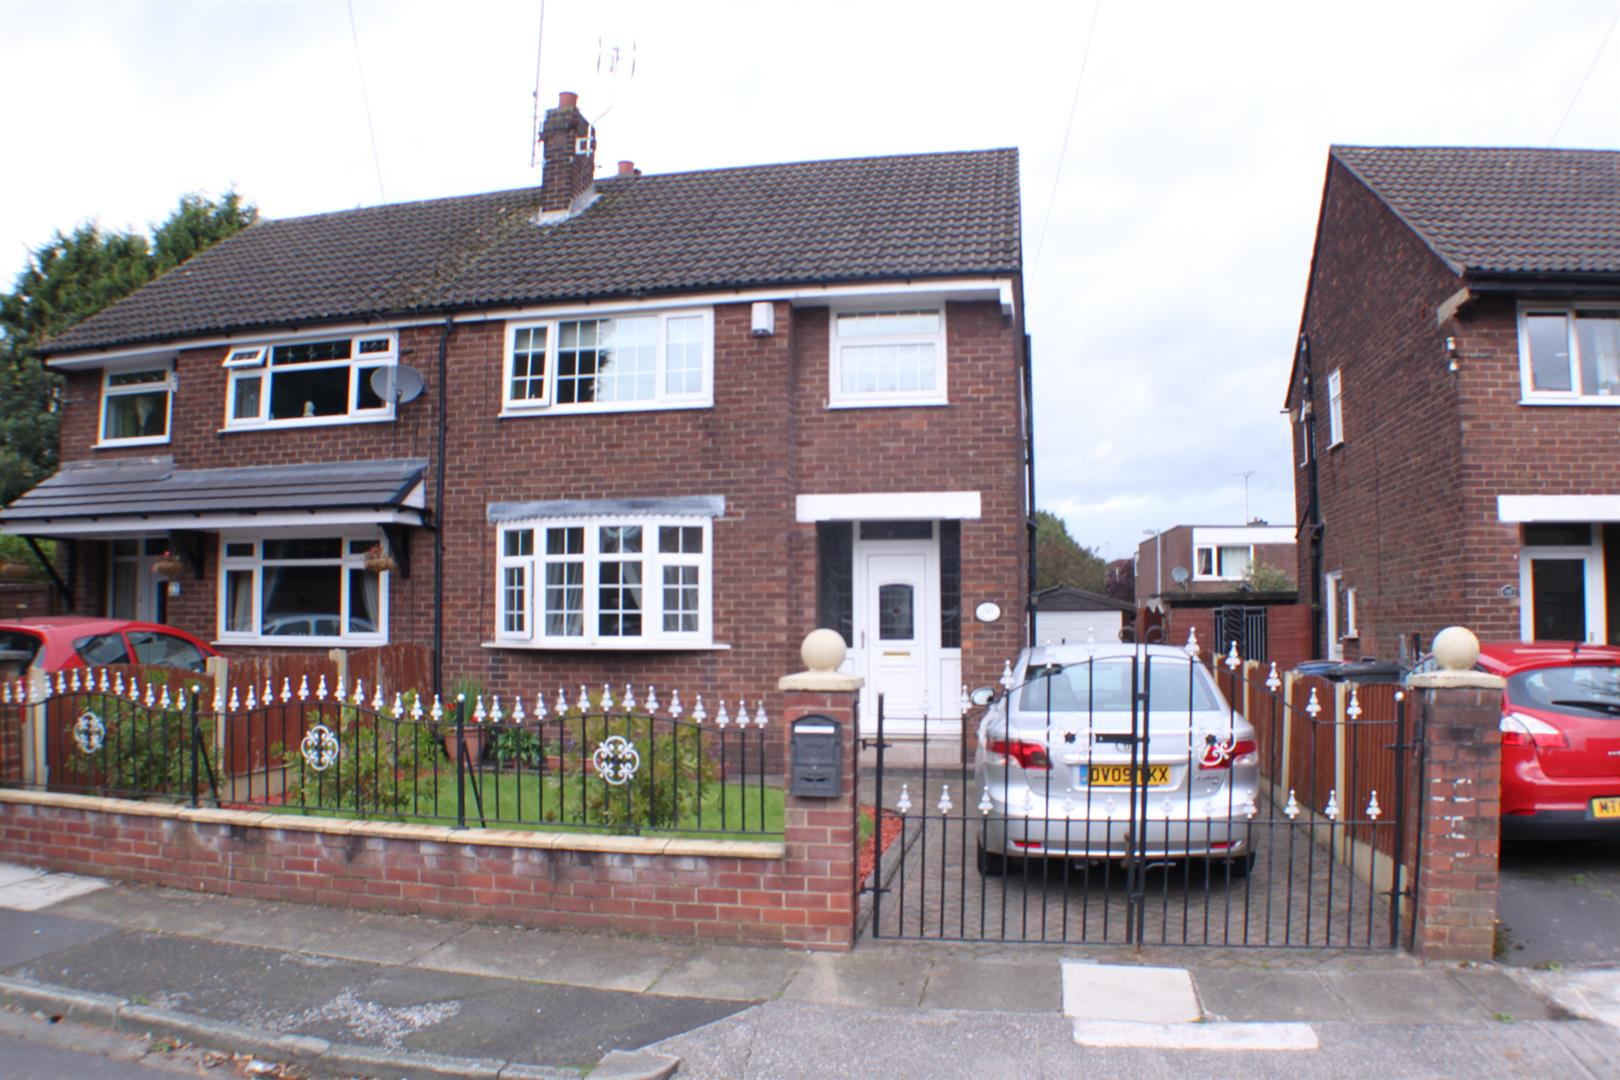 3 Bedrooms Semi Detached House for sale in Bindloss Avenue, Eccles, Manchester